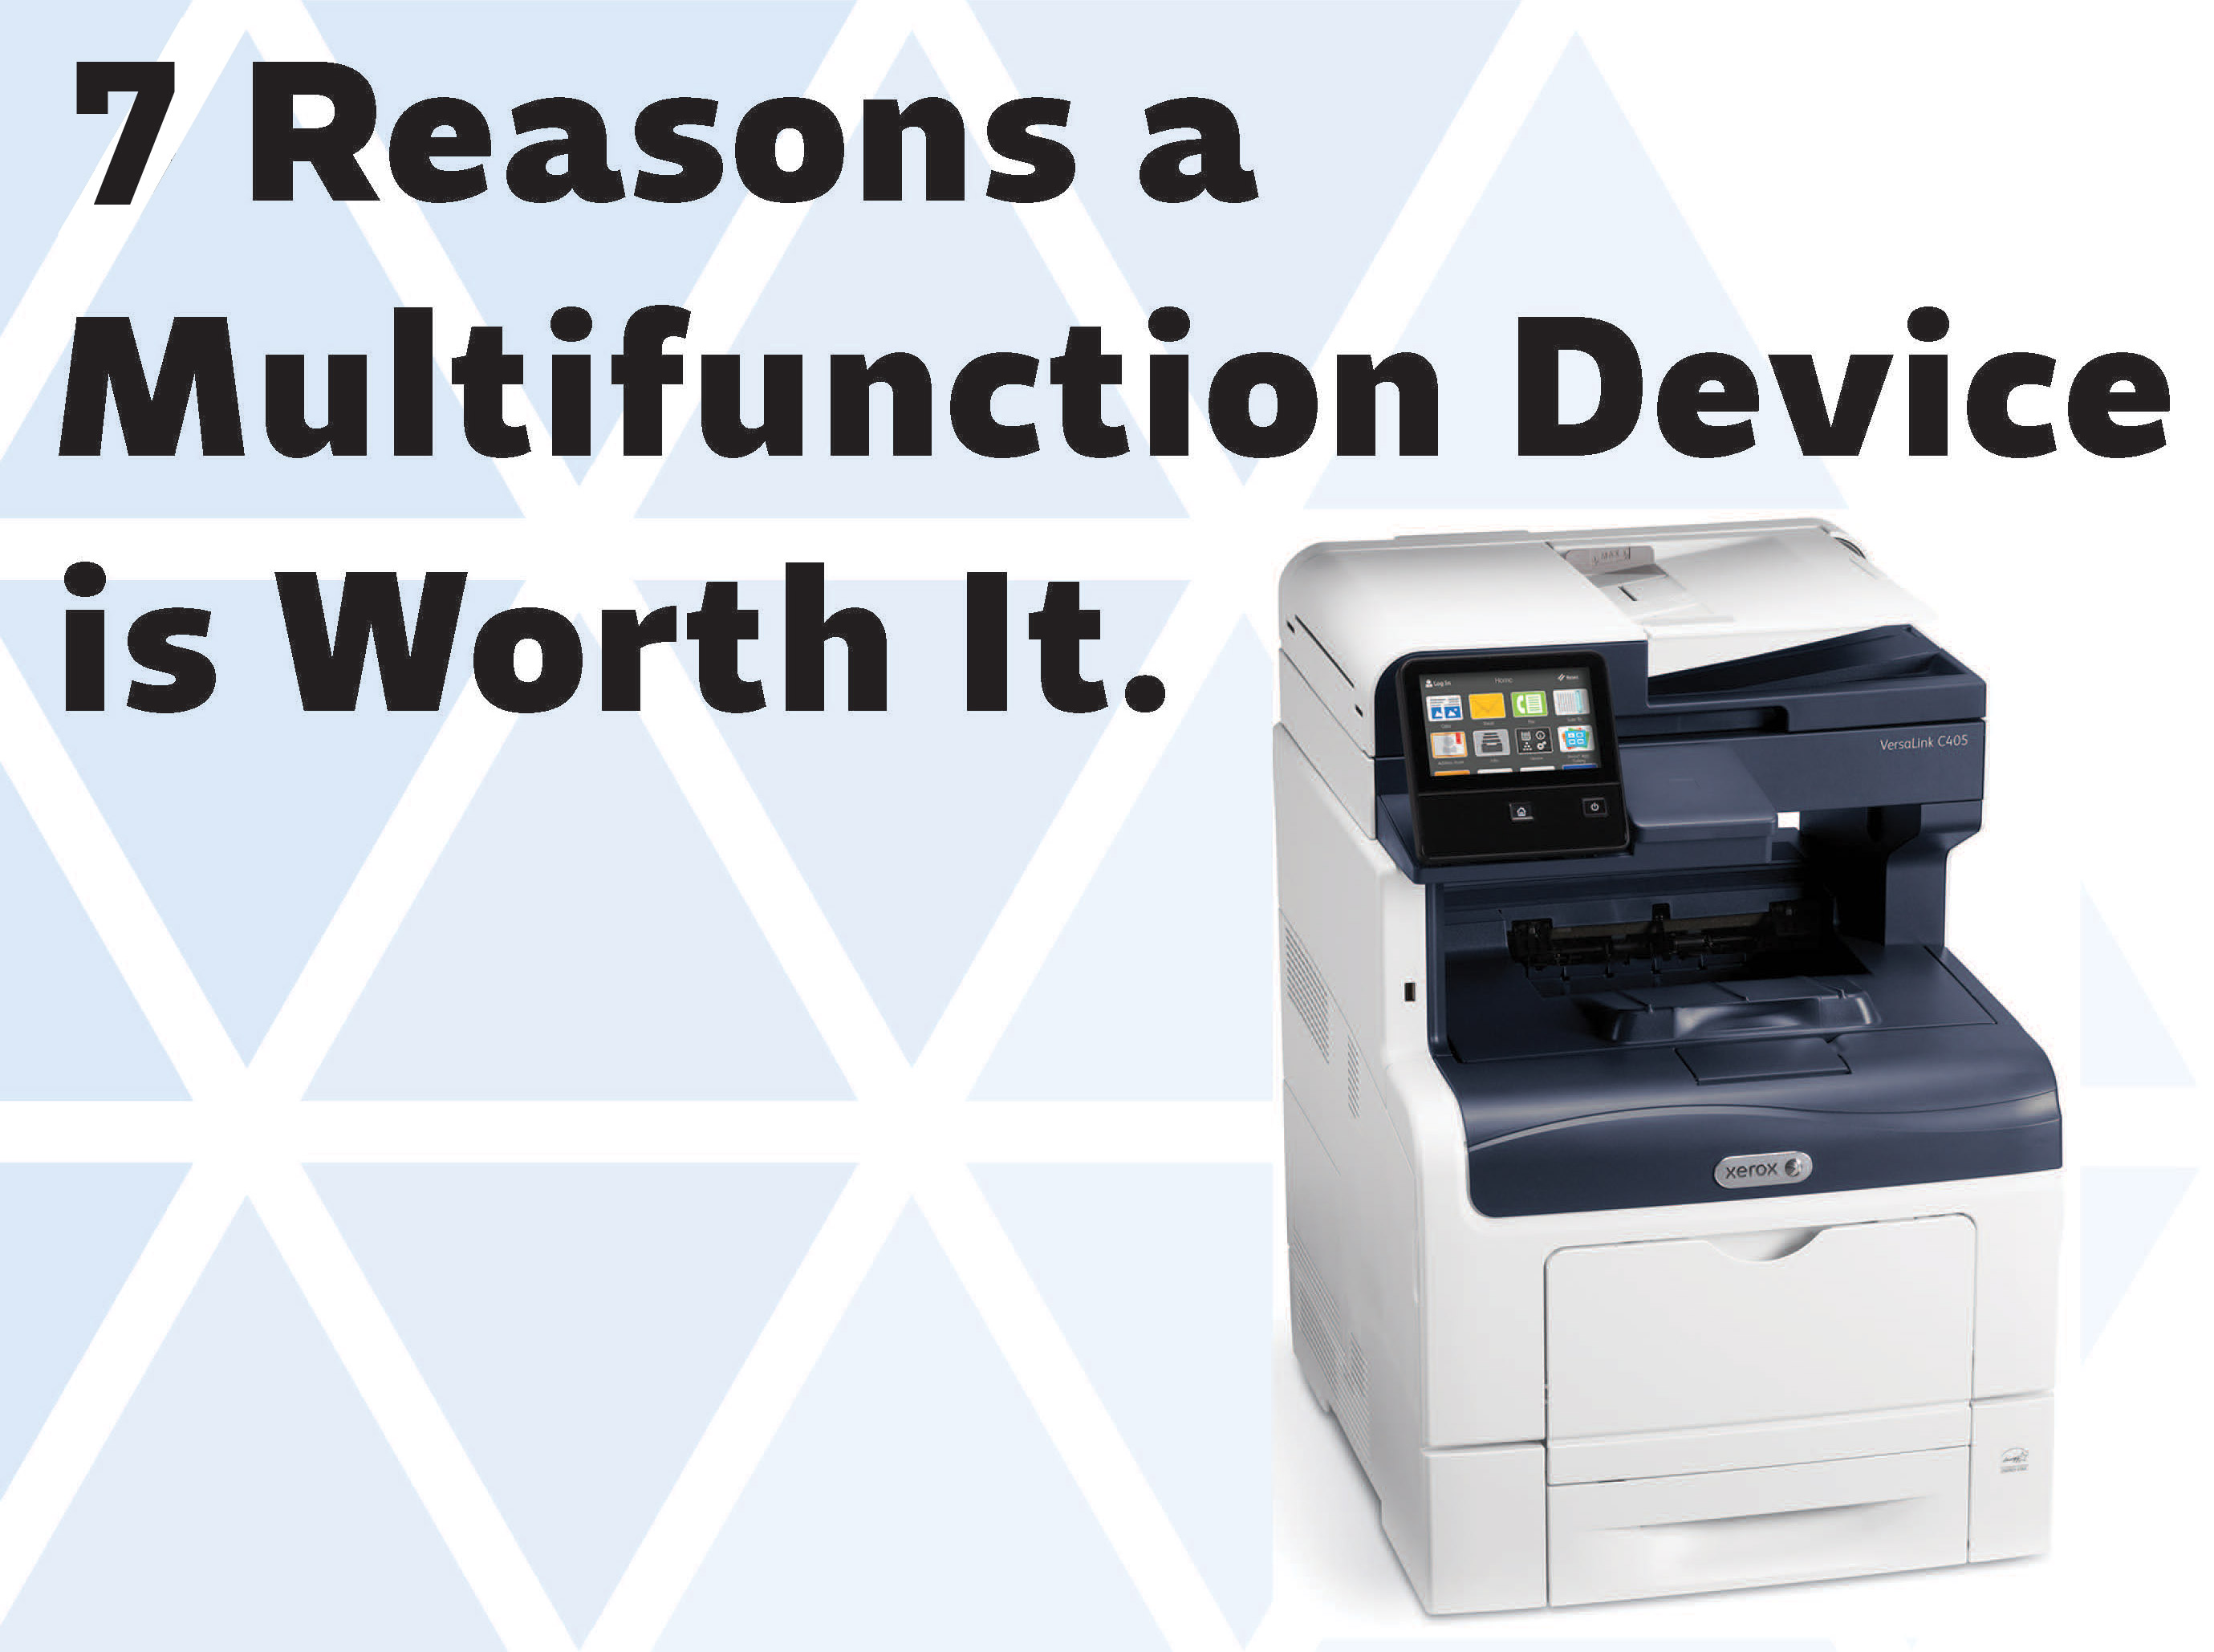 A multifunction device (MFD) is a device that performs a variety of functions that would otherwise be carried out by separate devices.